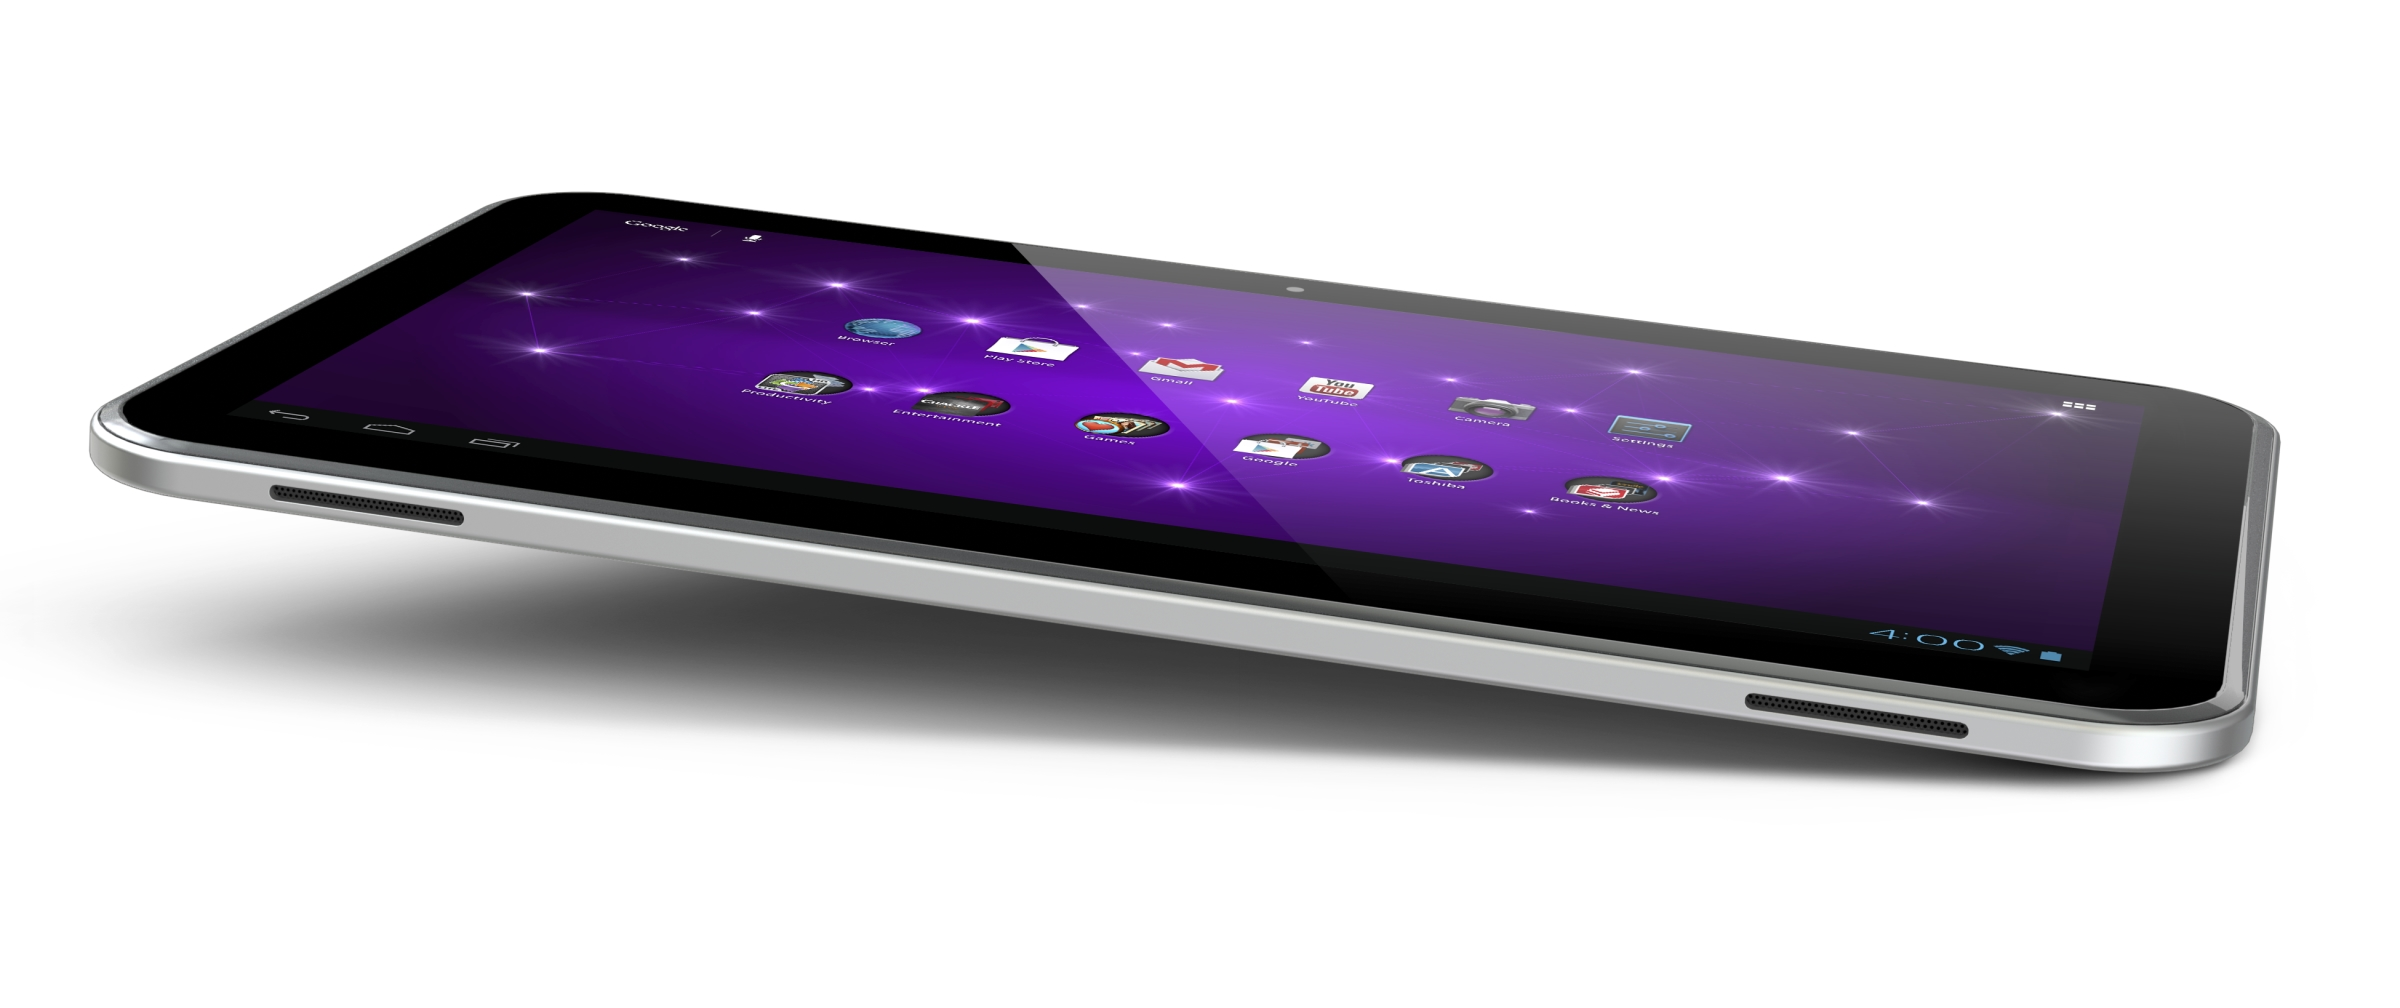 Toshiba Excite 13 AT335 Tablet with Superb Screen Resolutions